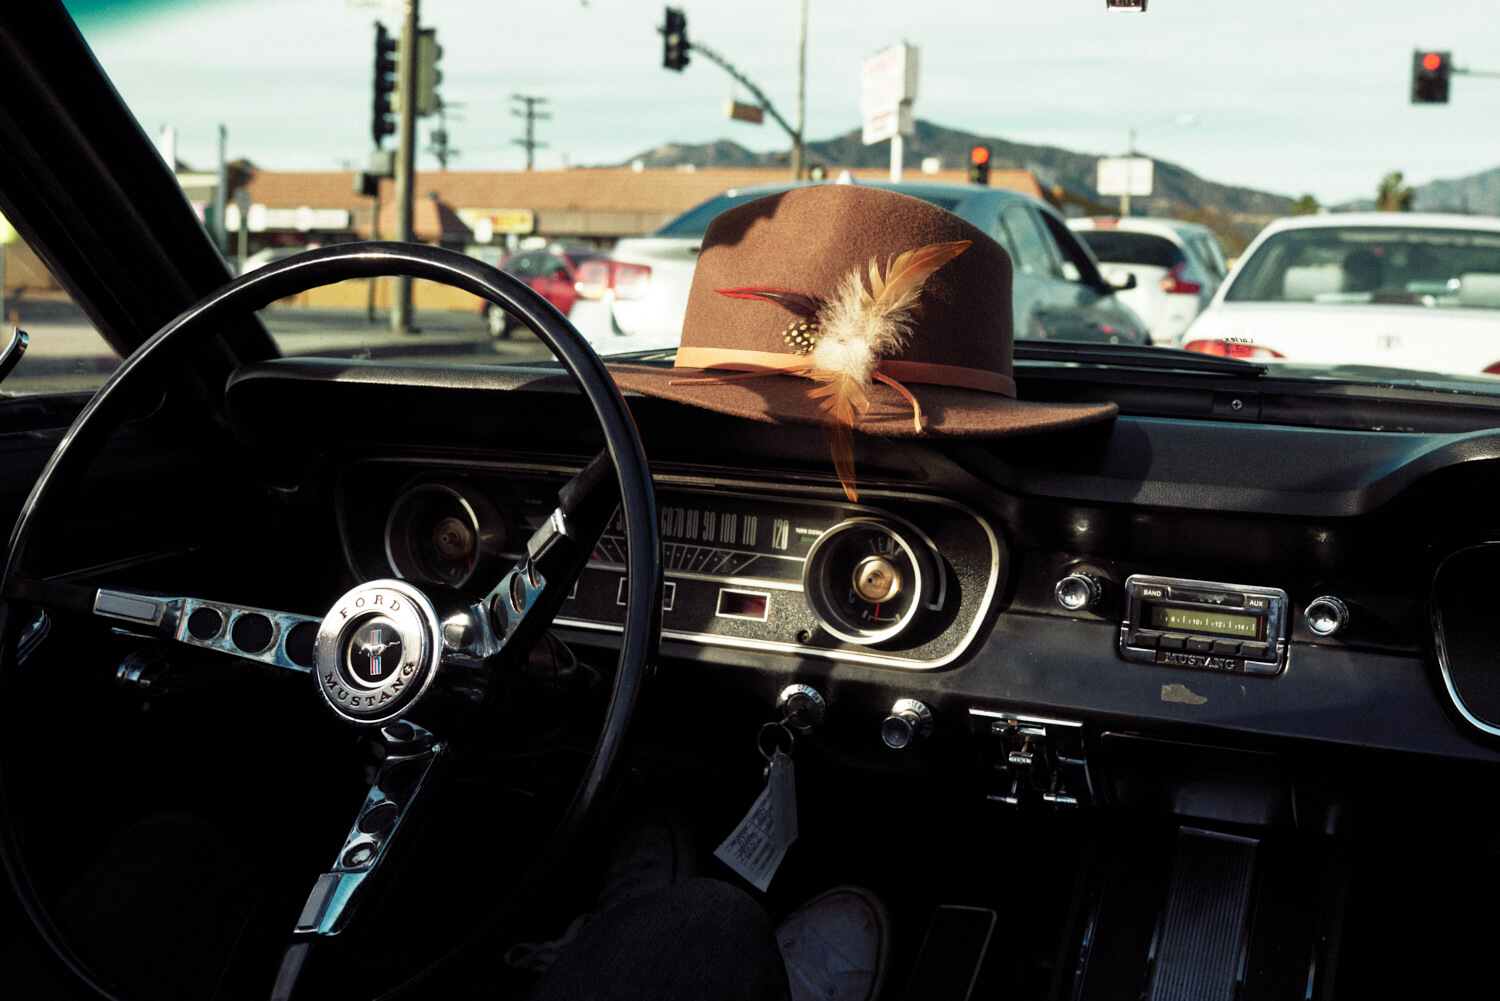 Cowboy had on dash by lifestyle photographer Tim Cole